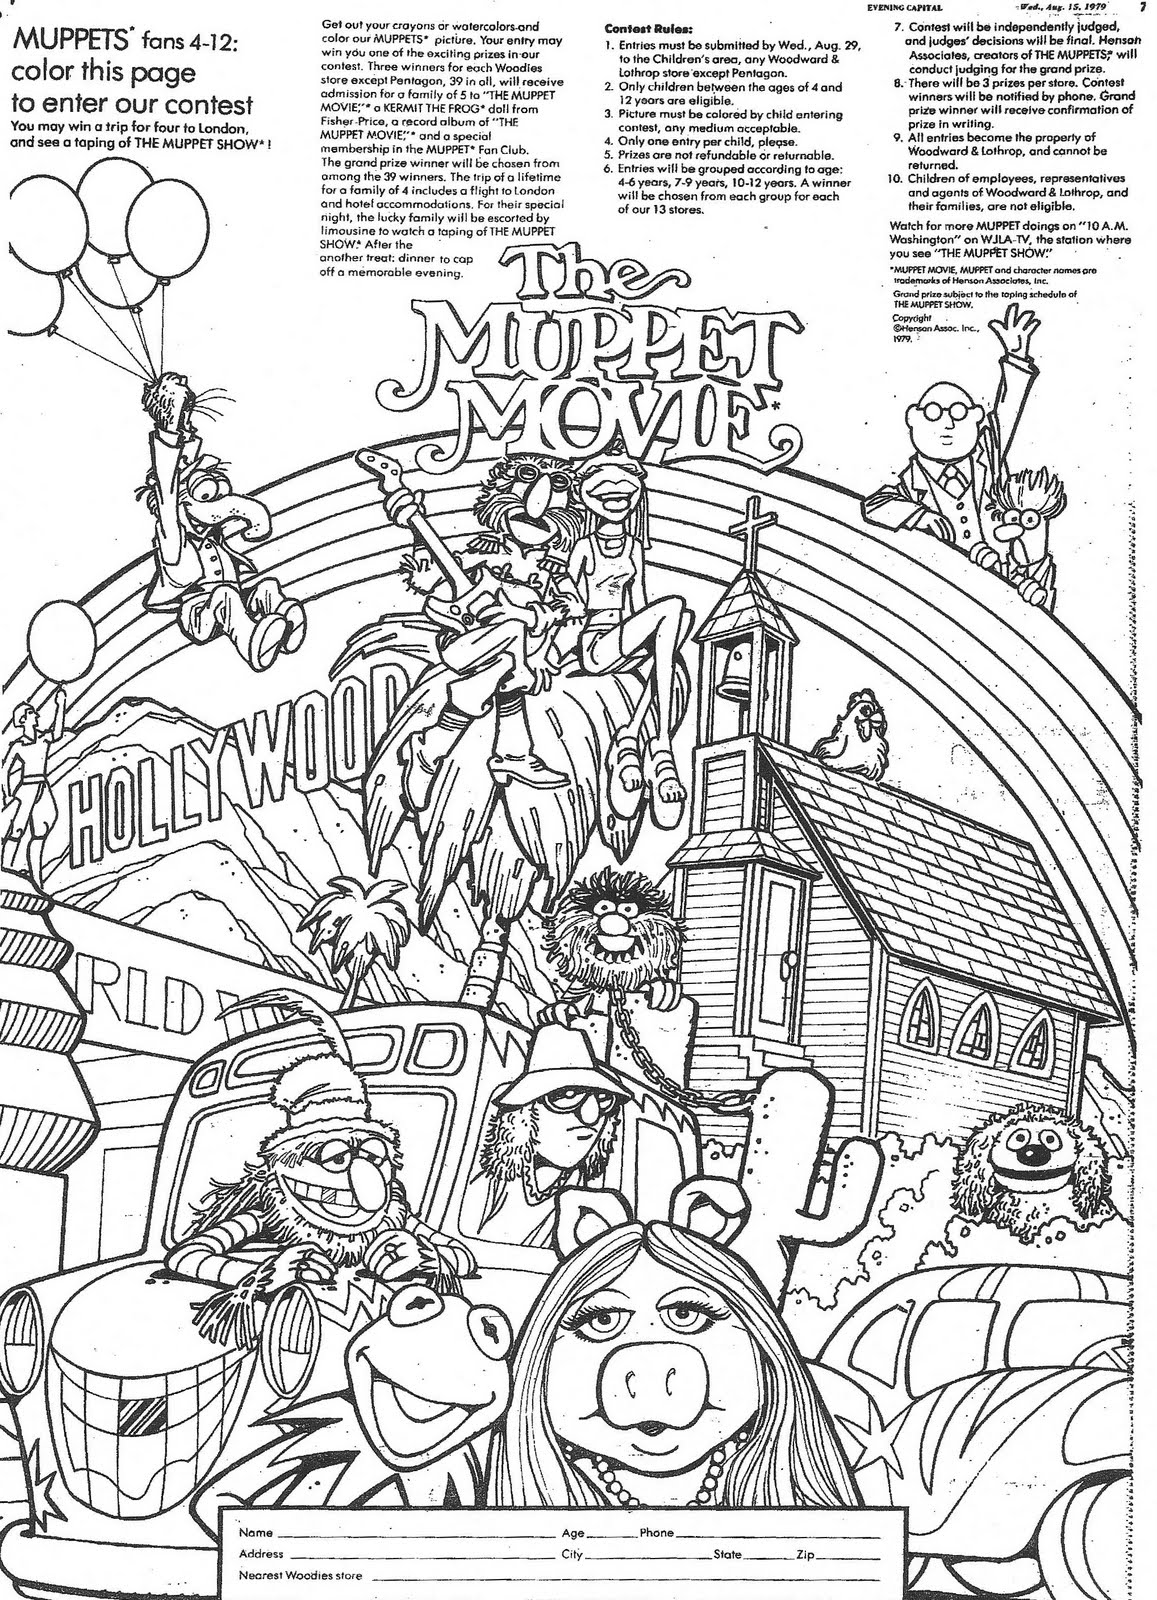 The Muppet Movie Coloring Contest, 1979